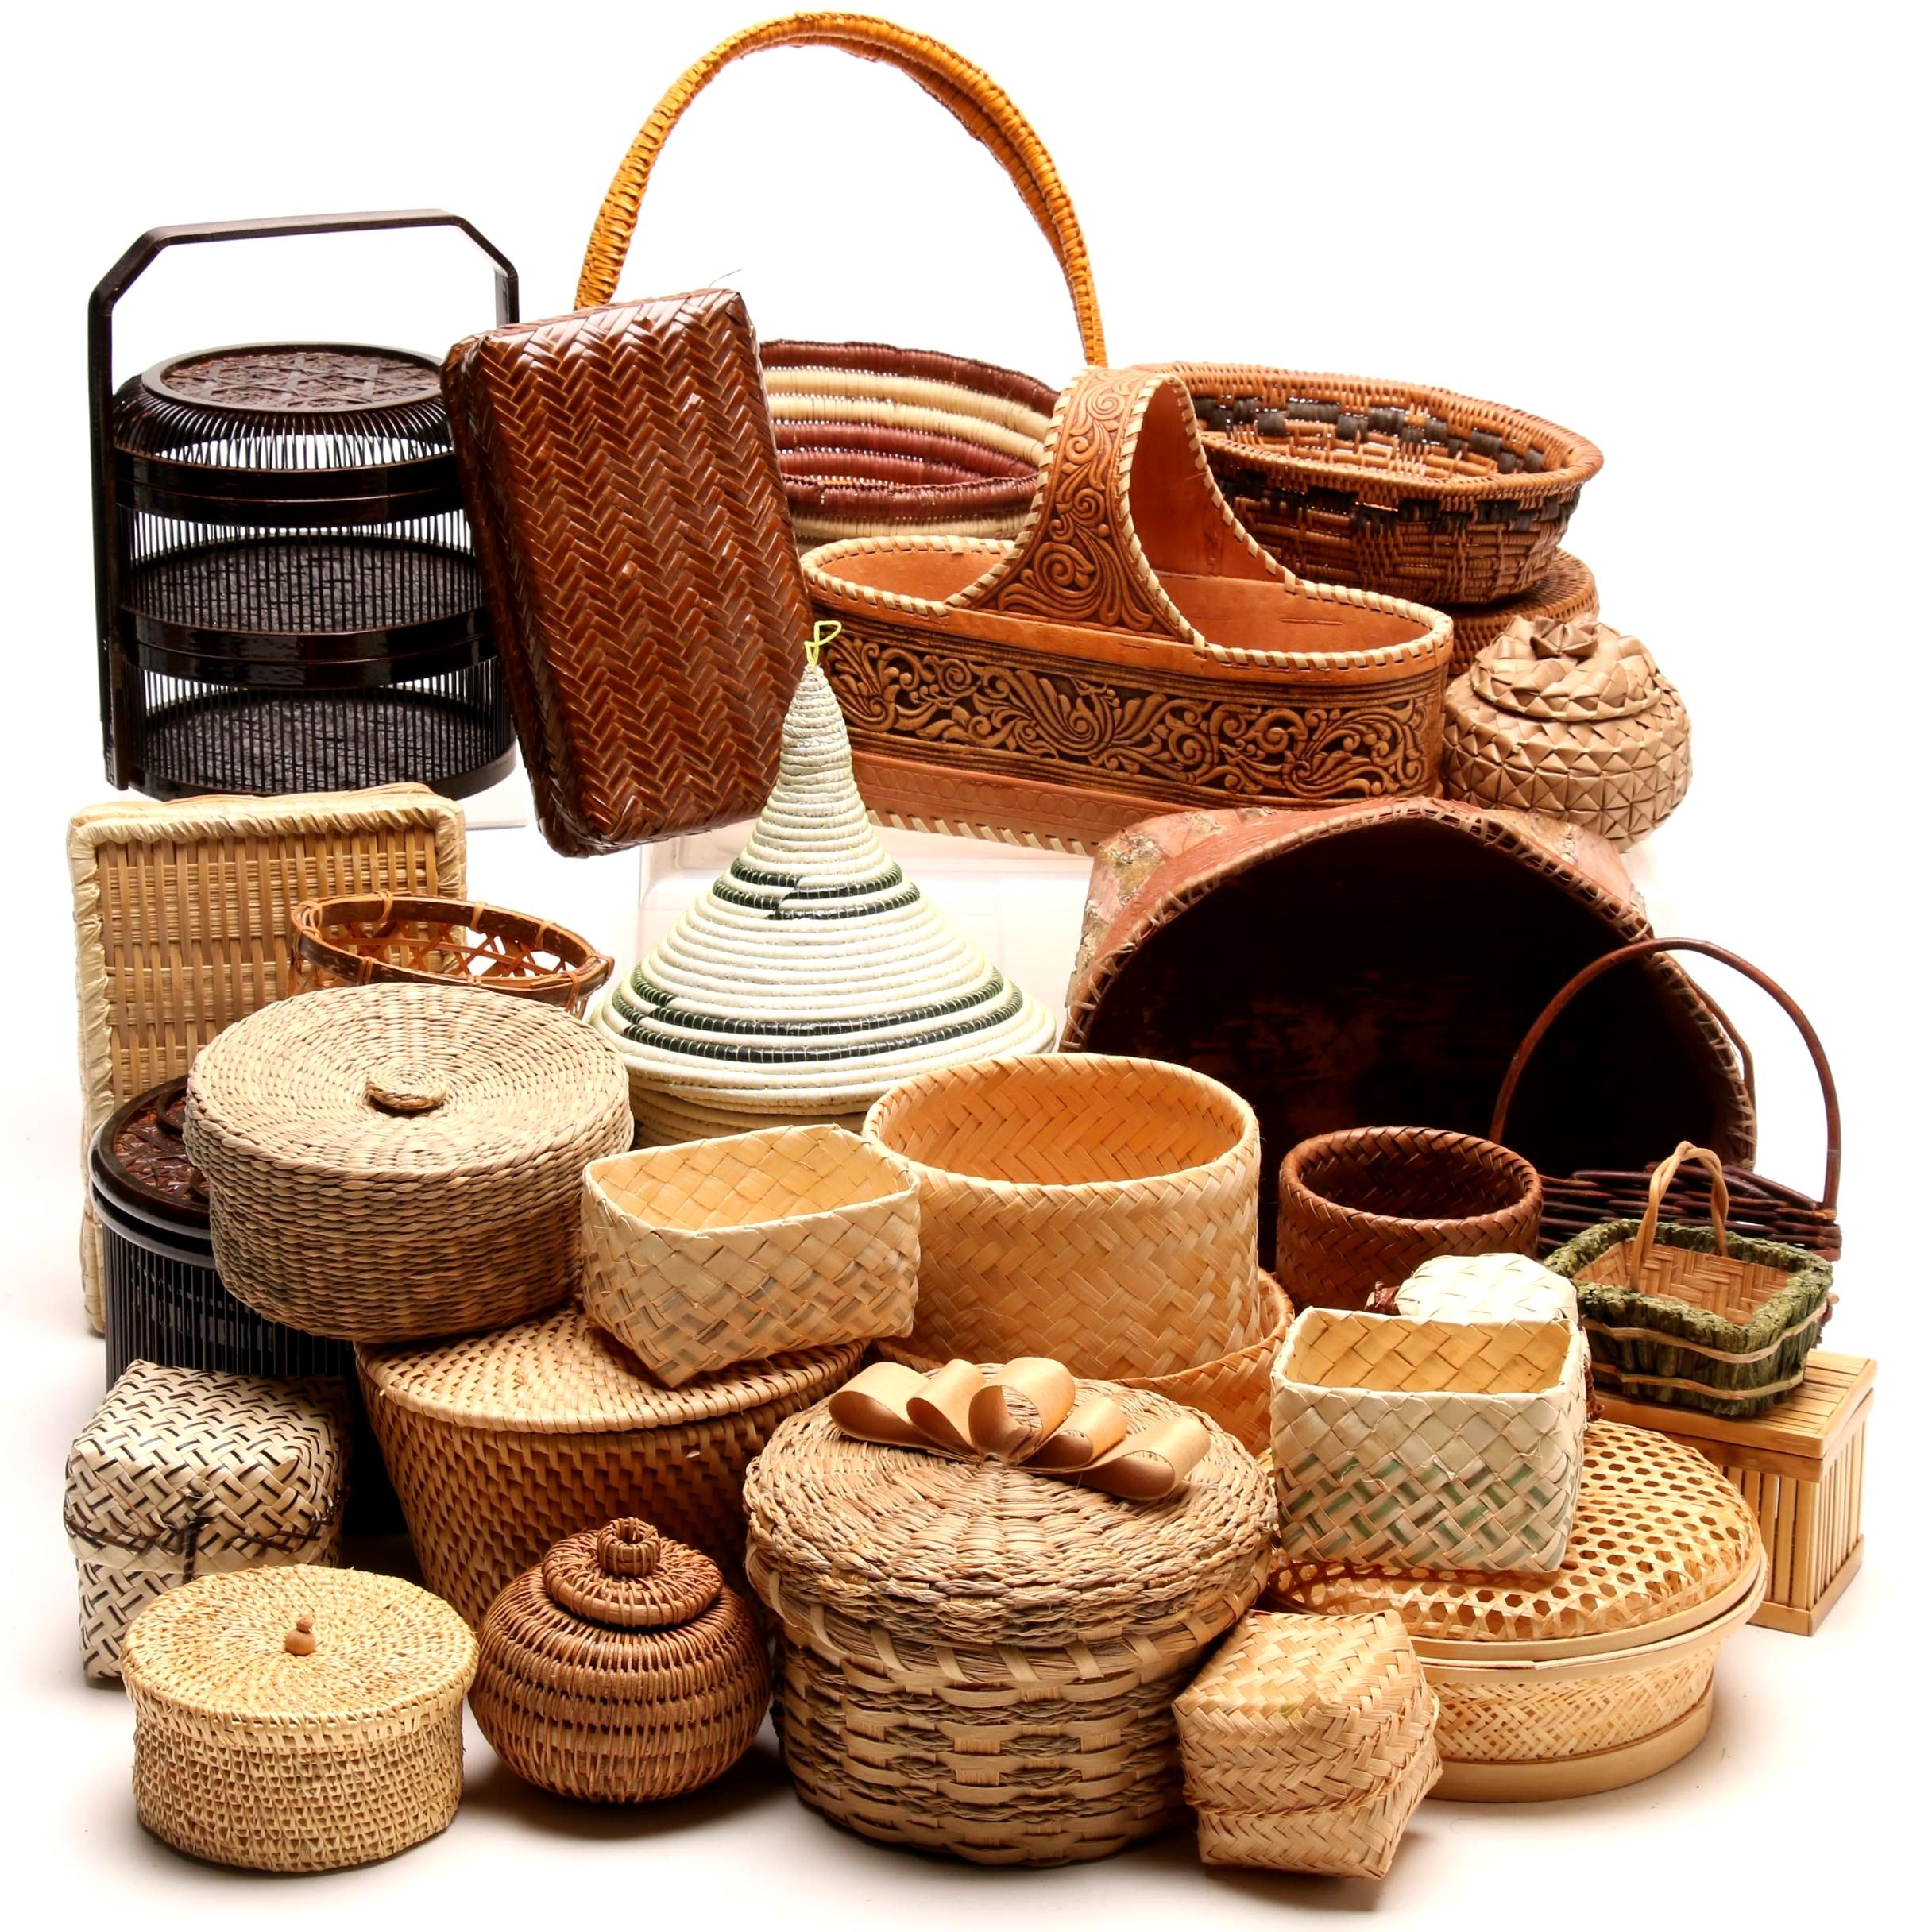 Hand Woven Baskets from Japan, Africa, Alaska and More